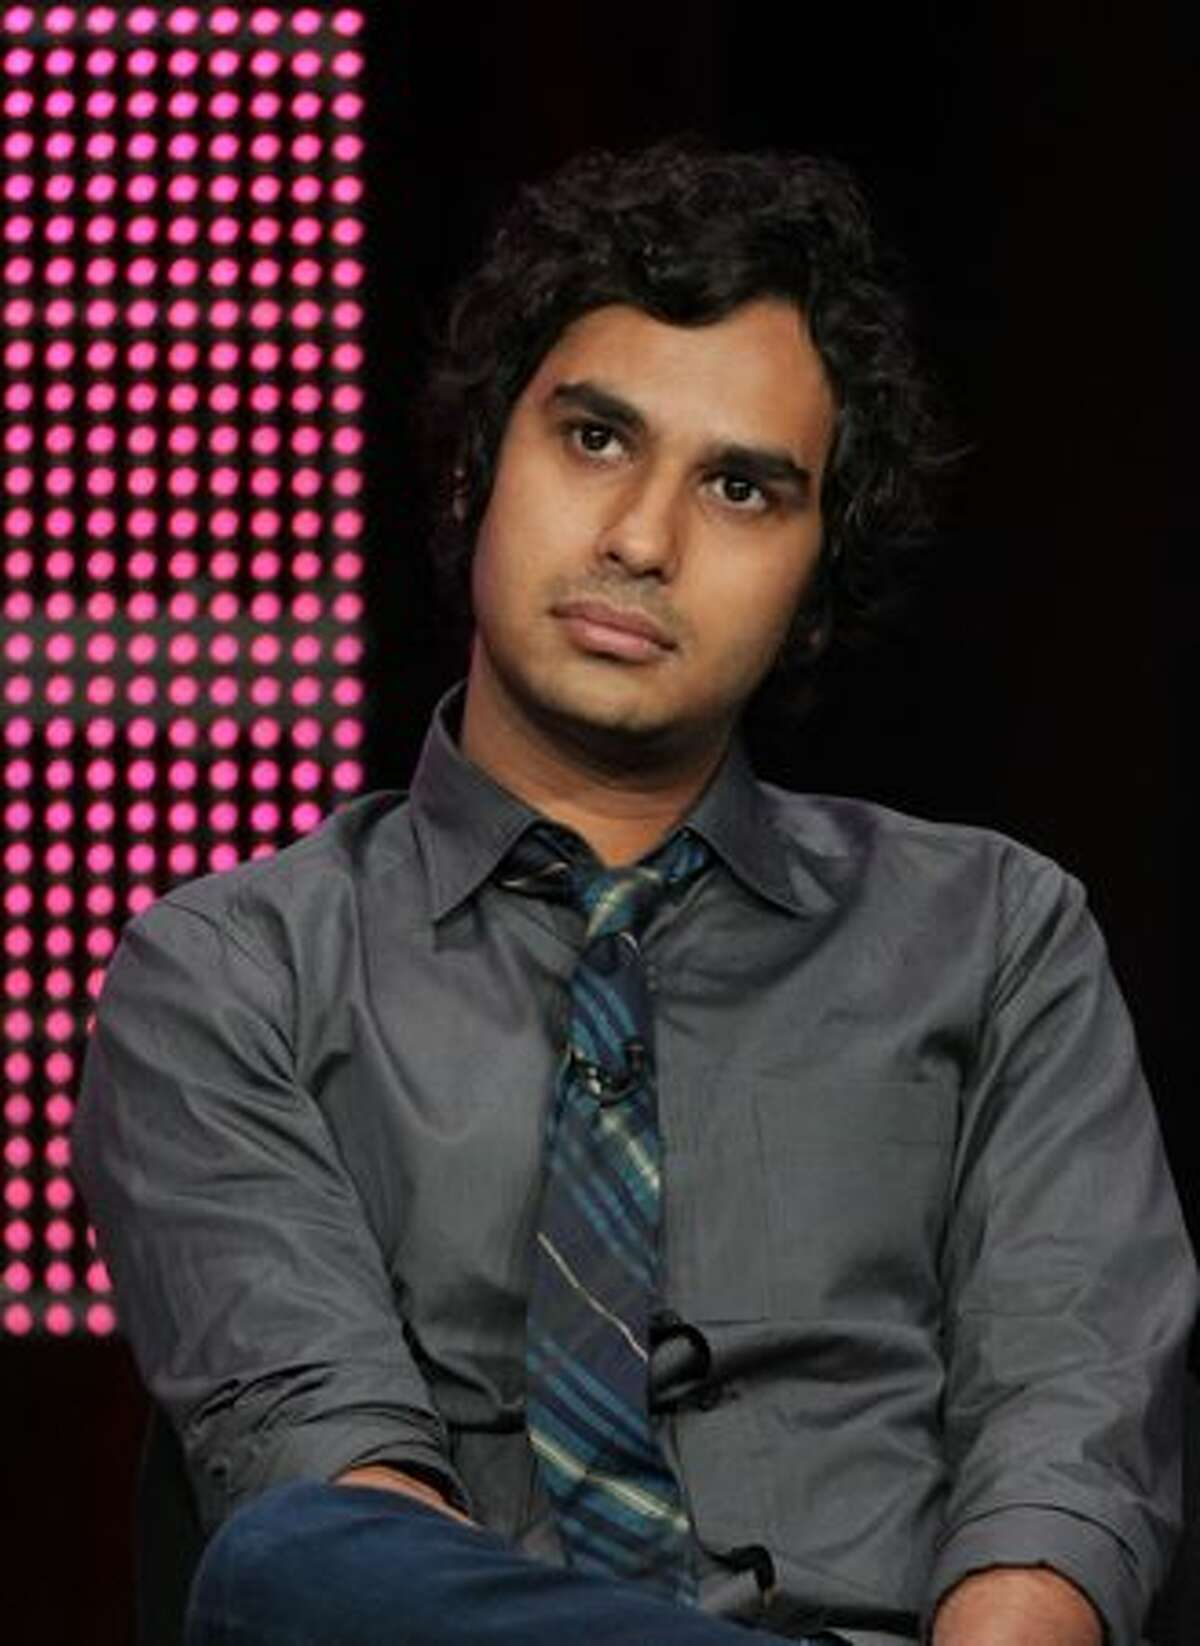 """Actor Kunal Nayyar speaks at """"The Big Bang Theory"""" panel during 2010 Summer TCA Tour Day 1 at the Beverly Hilton Hotel in Beverly Hills, California."""